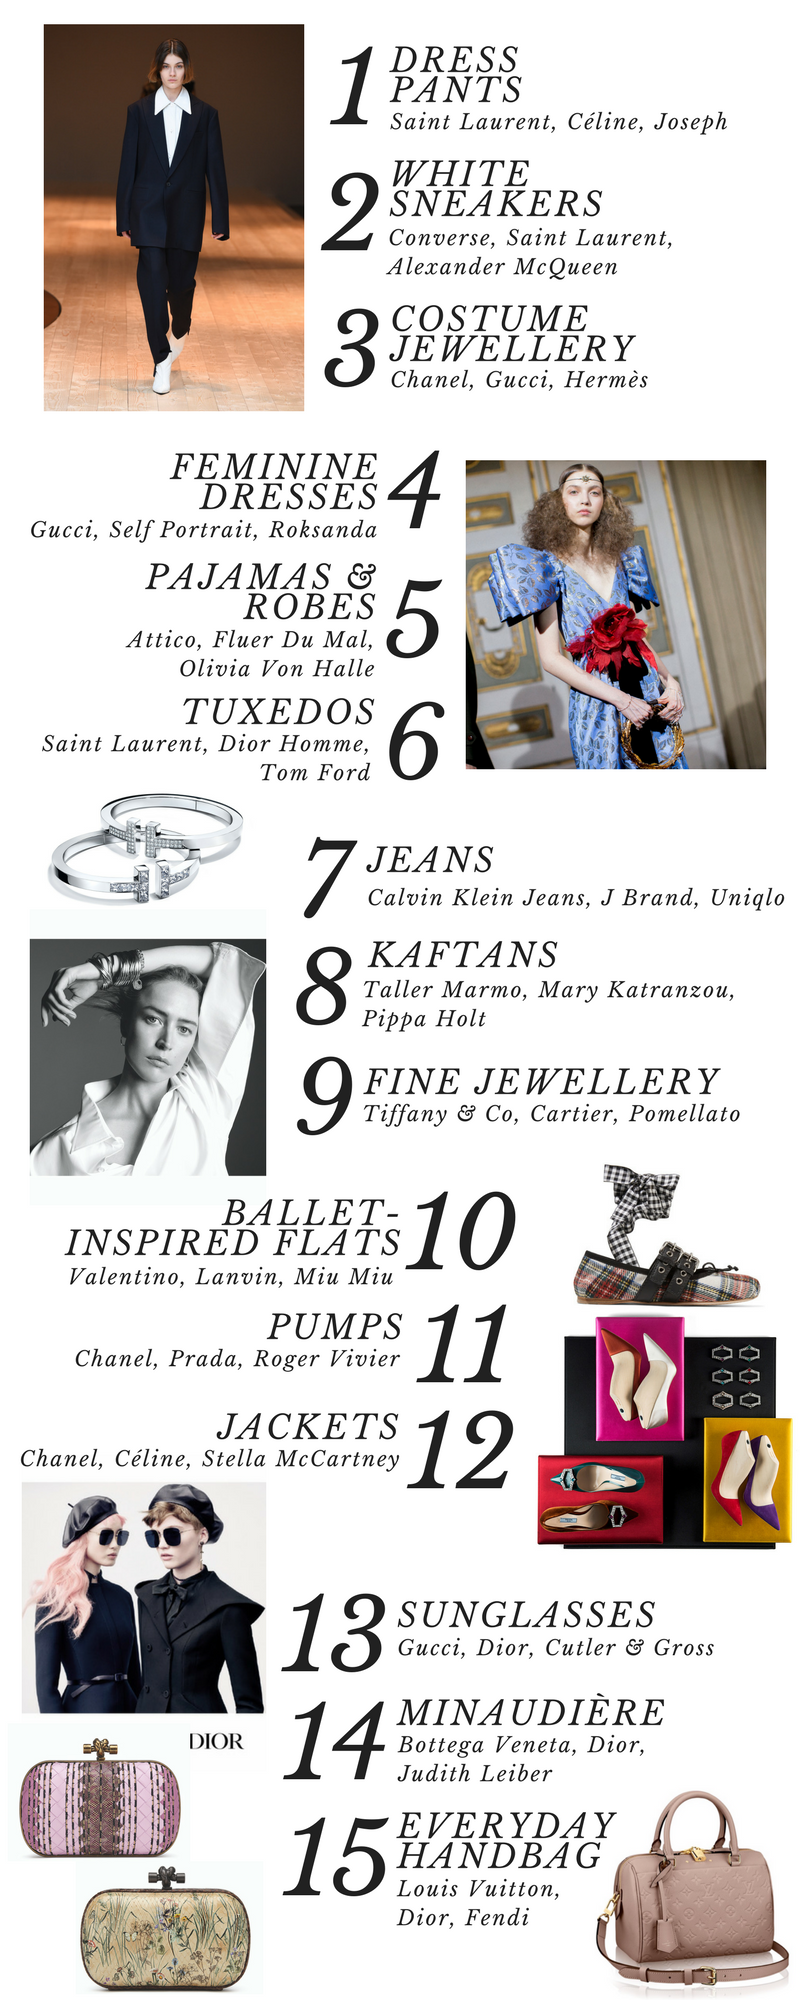 Curatedition Top 15 Wardrobe Essentials